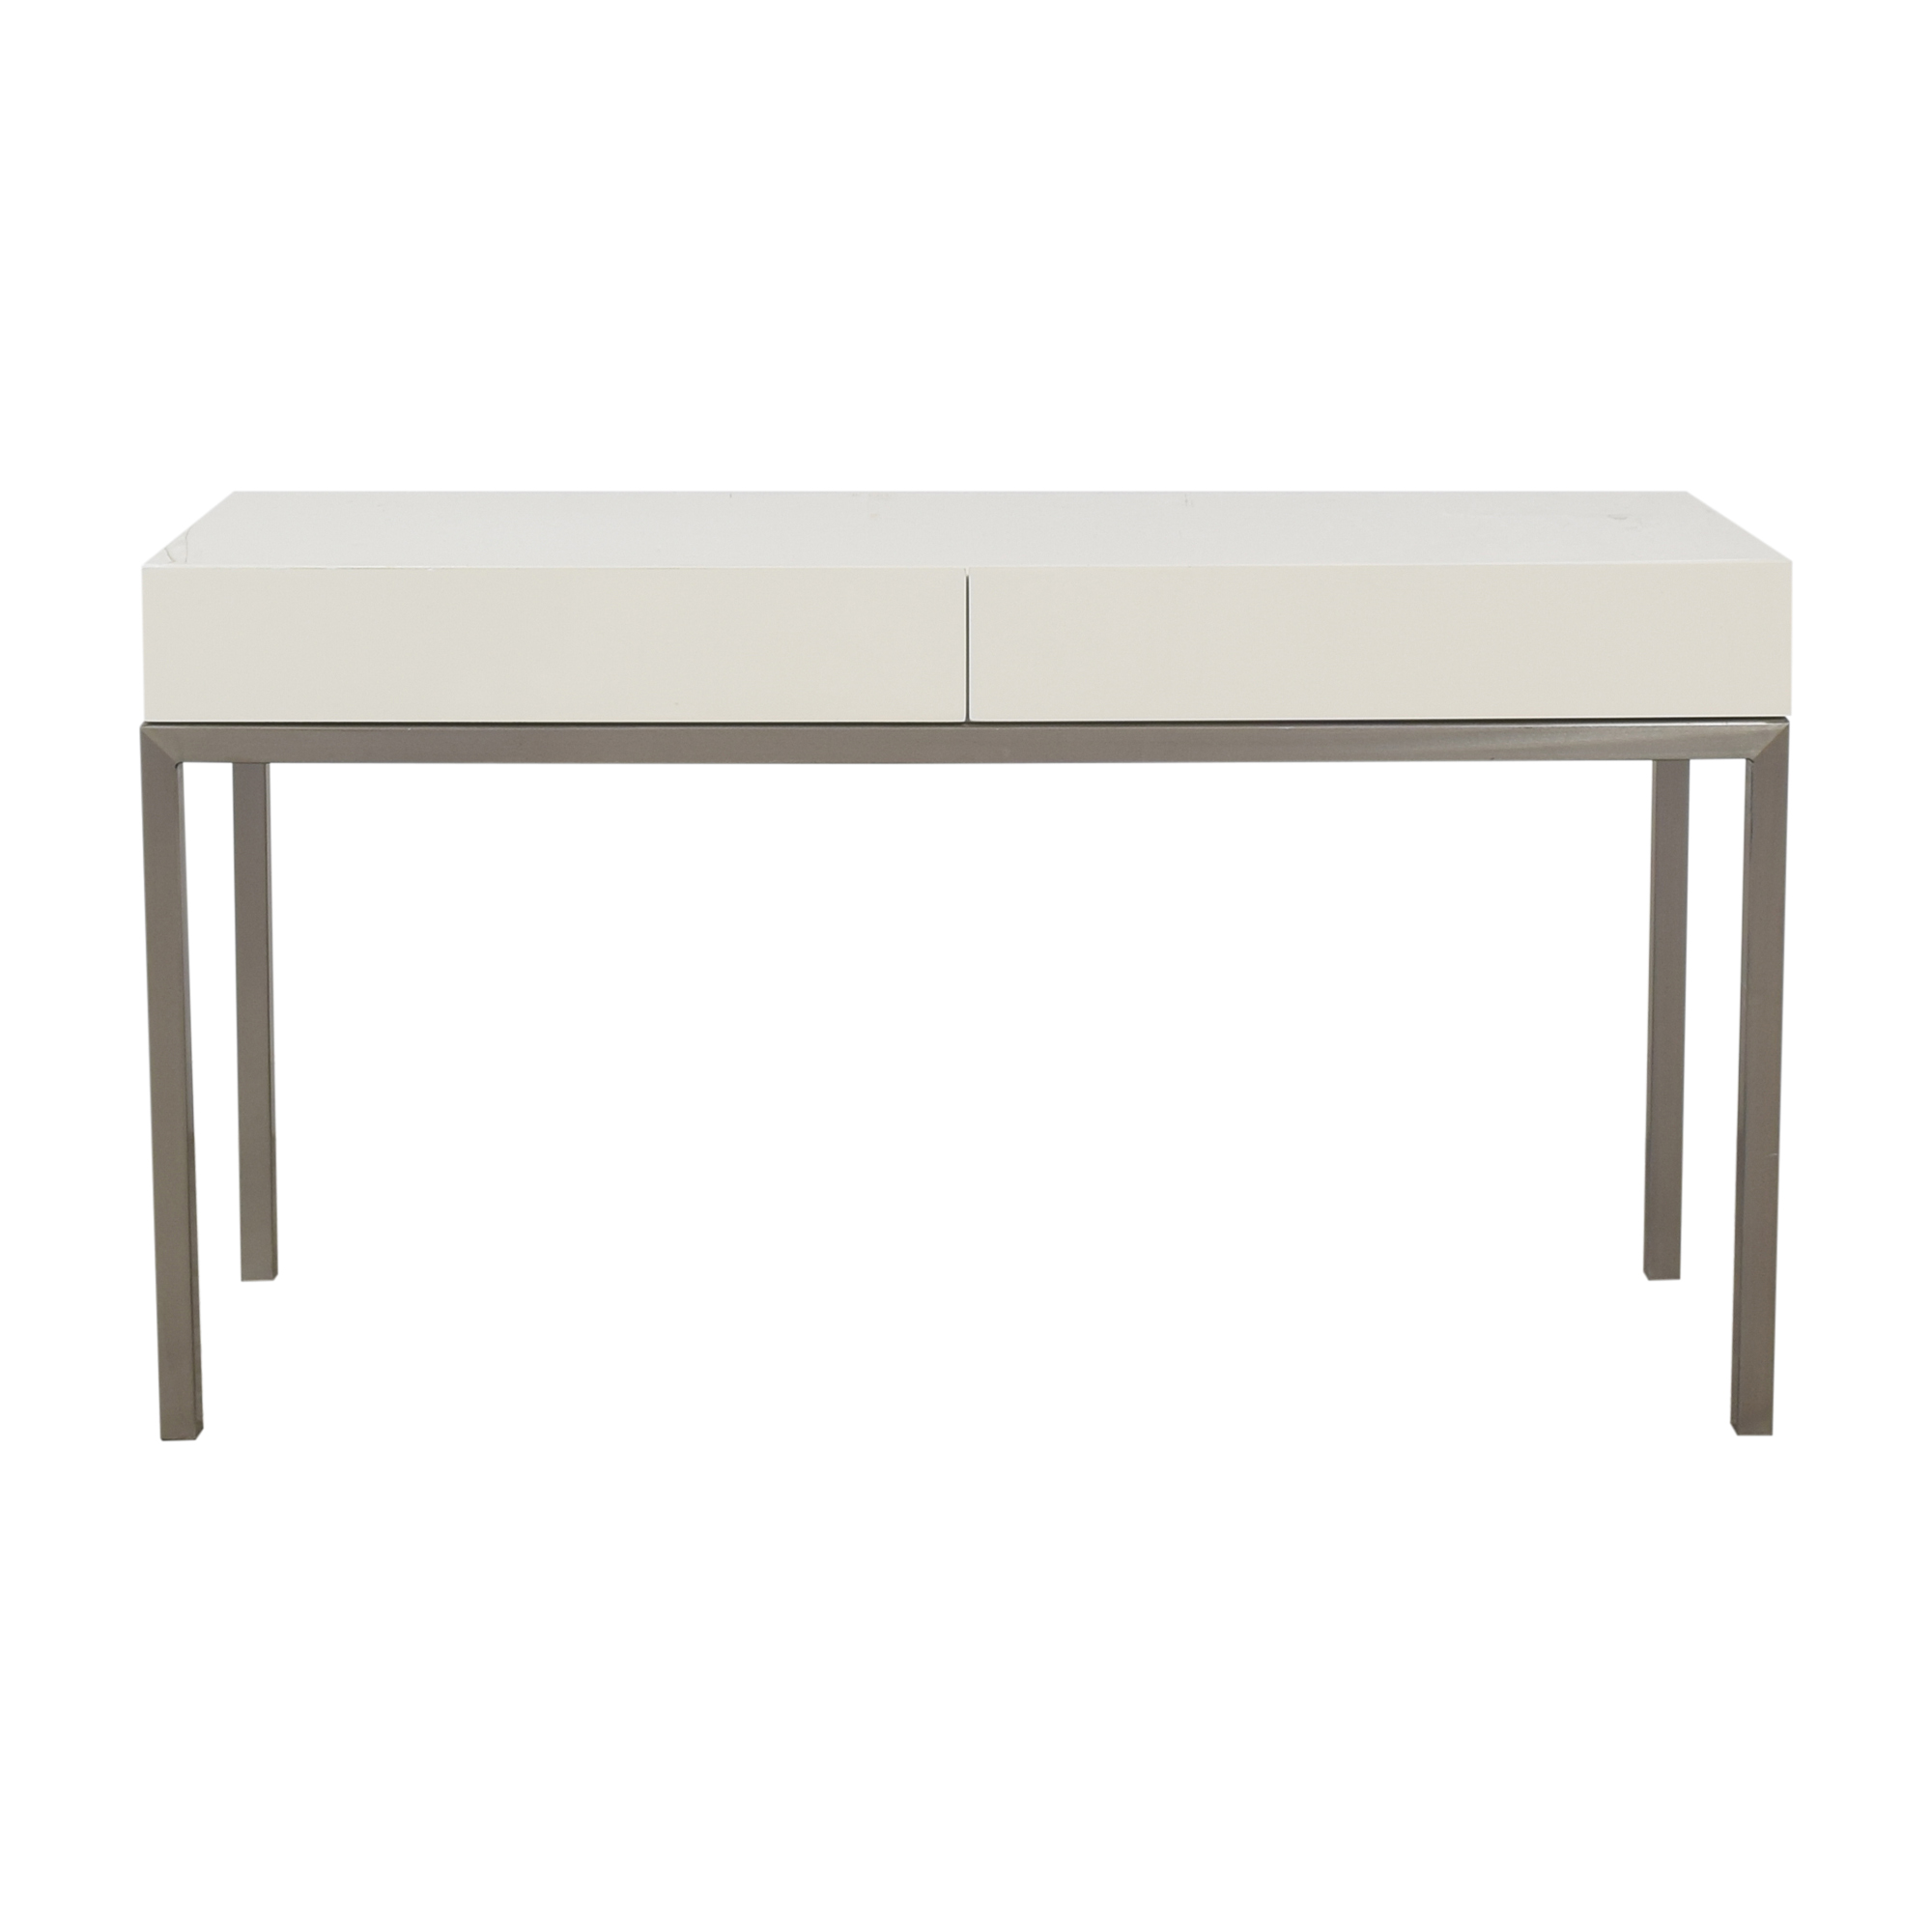 Chiasso Chiasso Modern Console Table ct